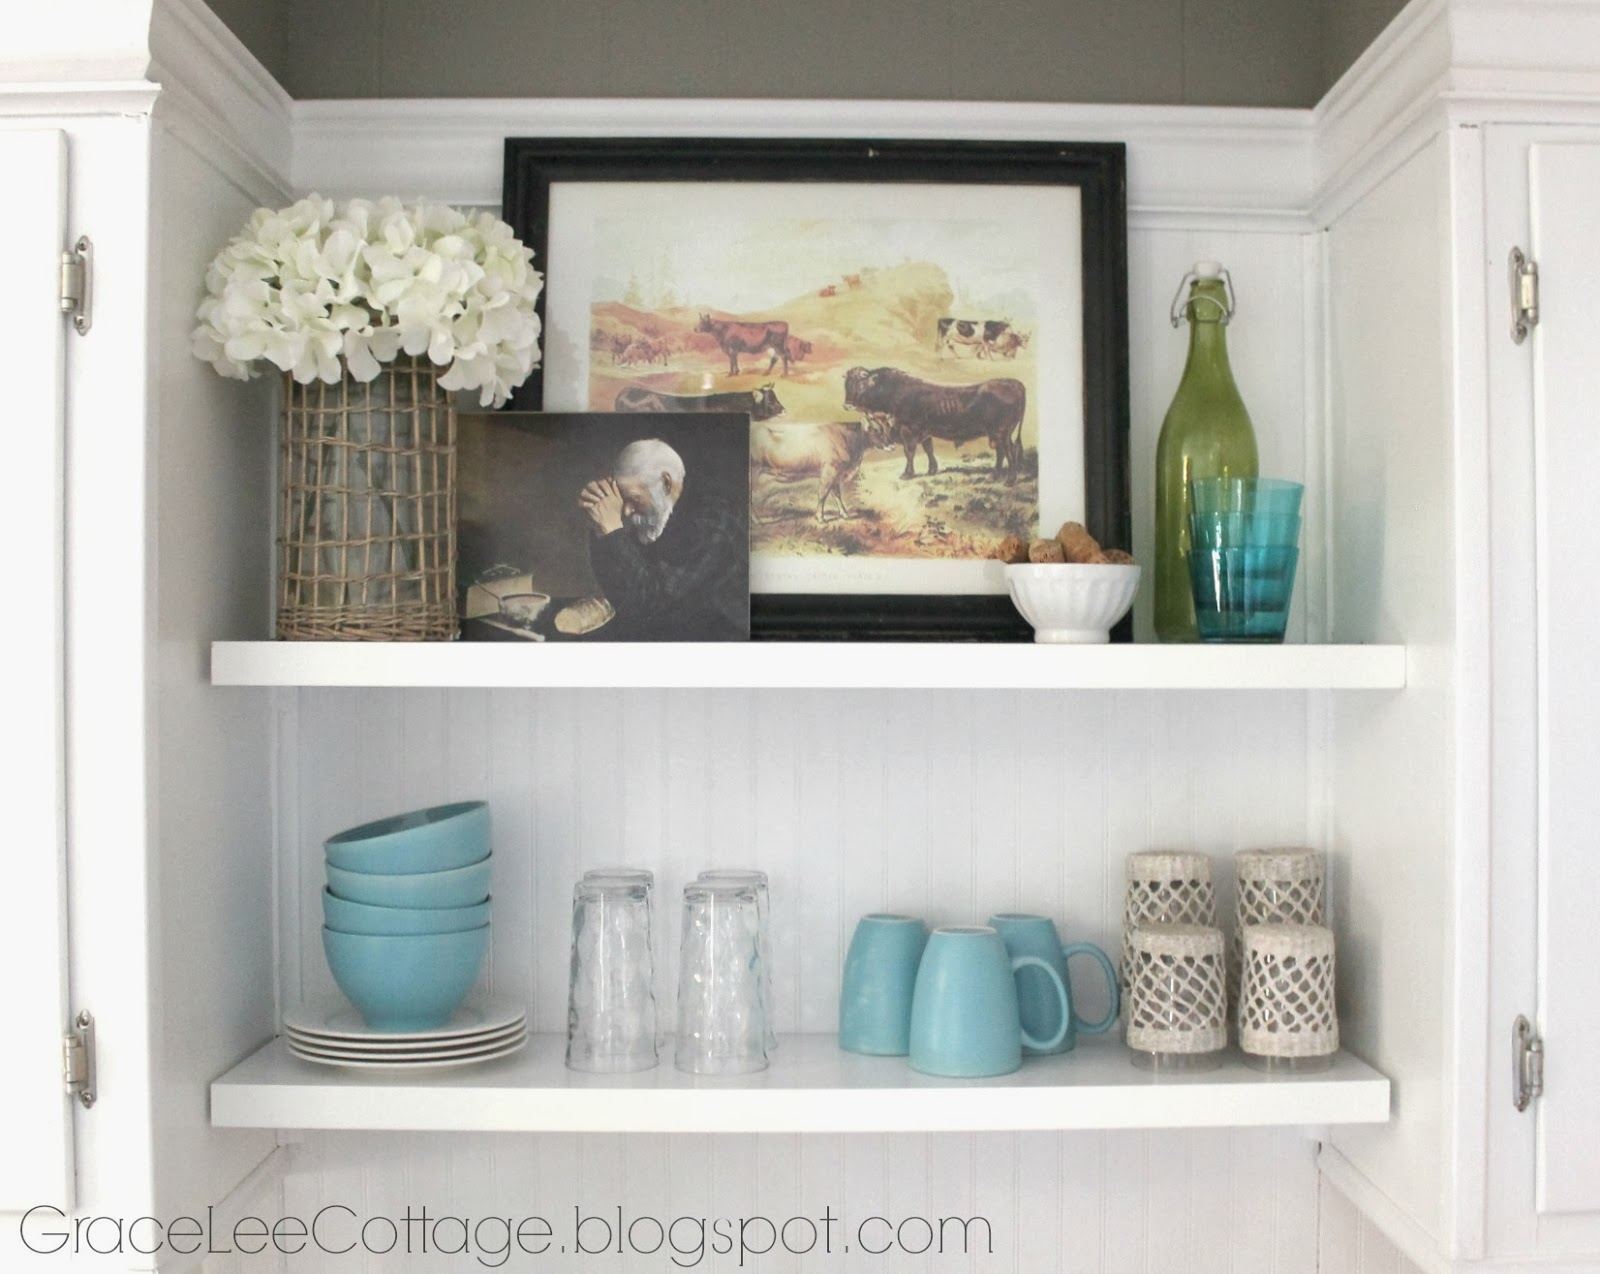 Grace Lee Cottage Kitchen Shelf Styling Winter Edition